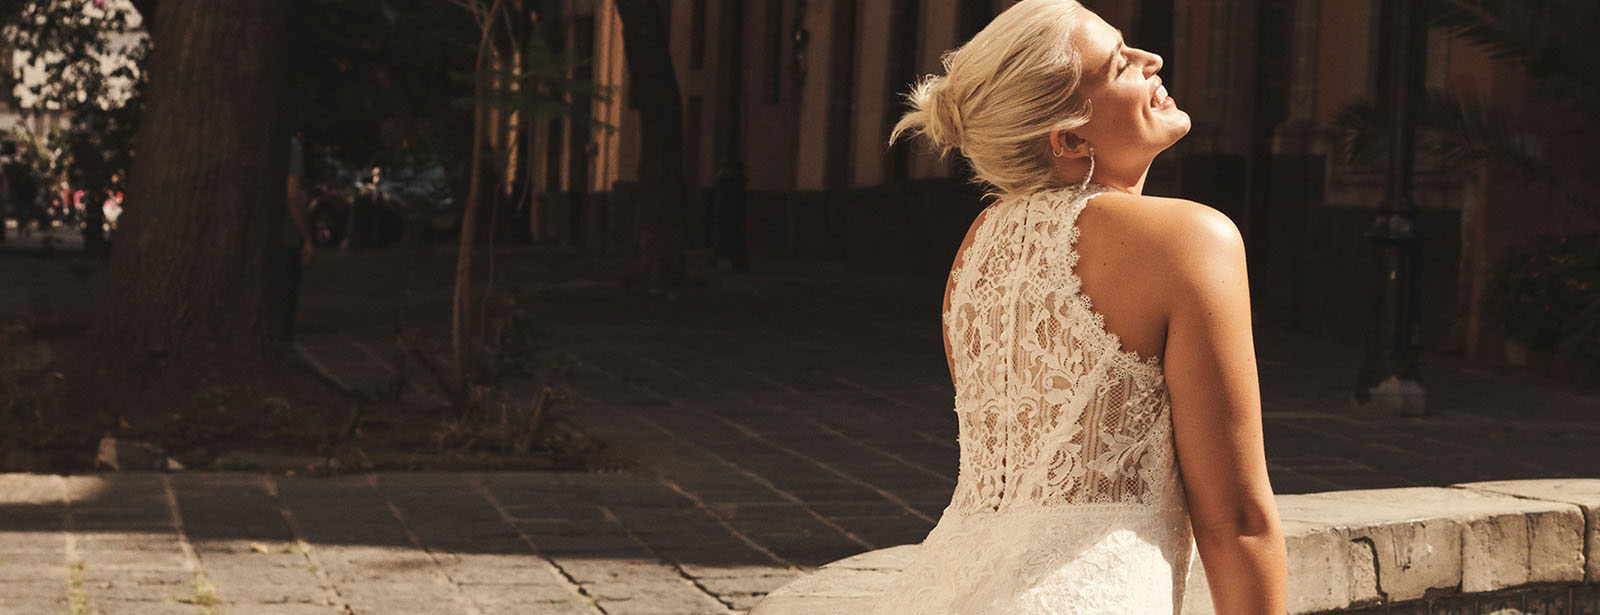 Bride with lace back